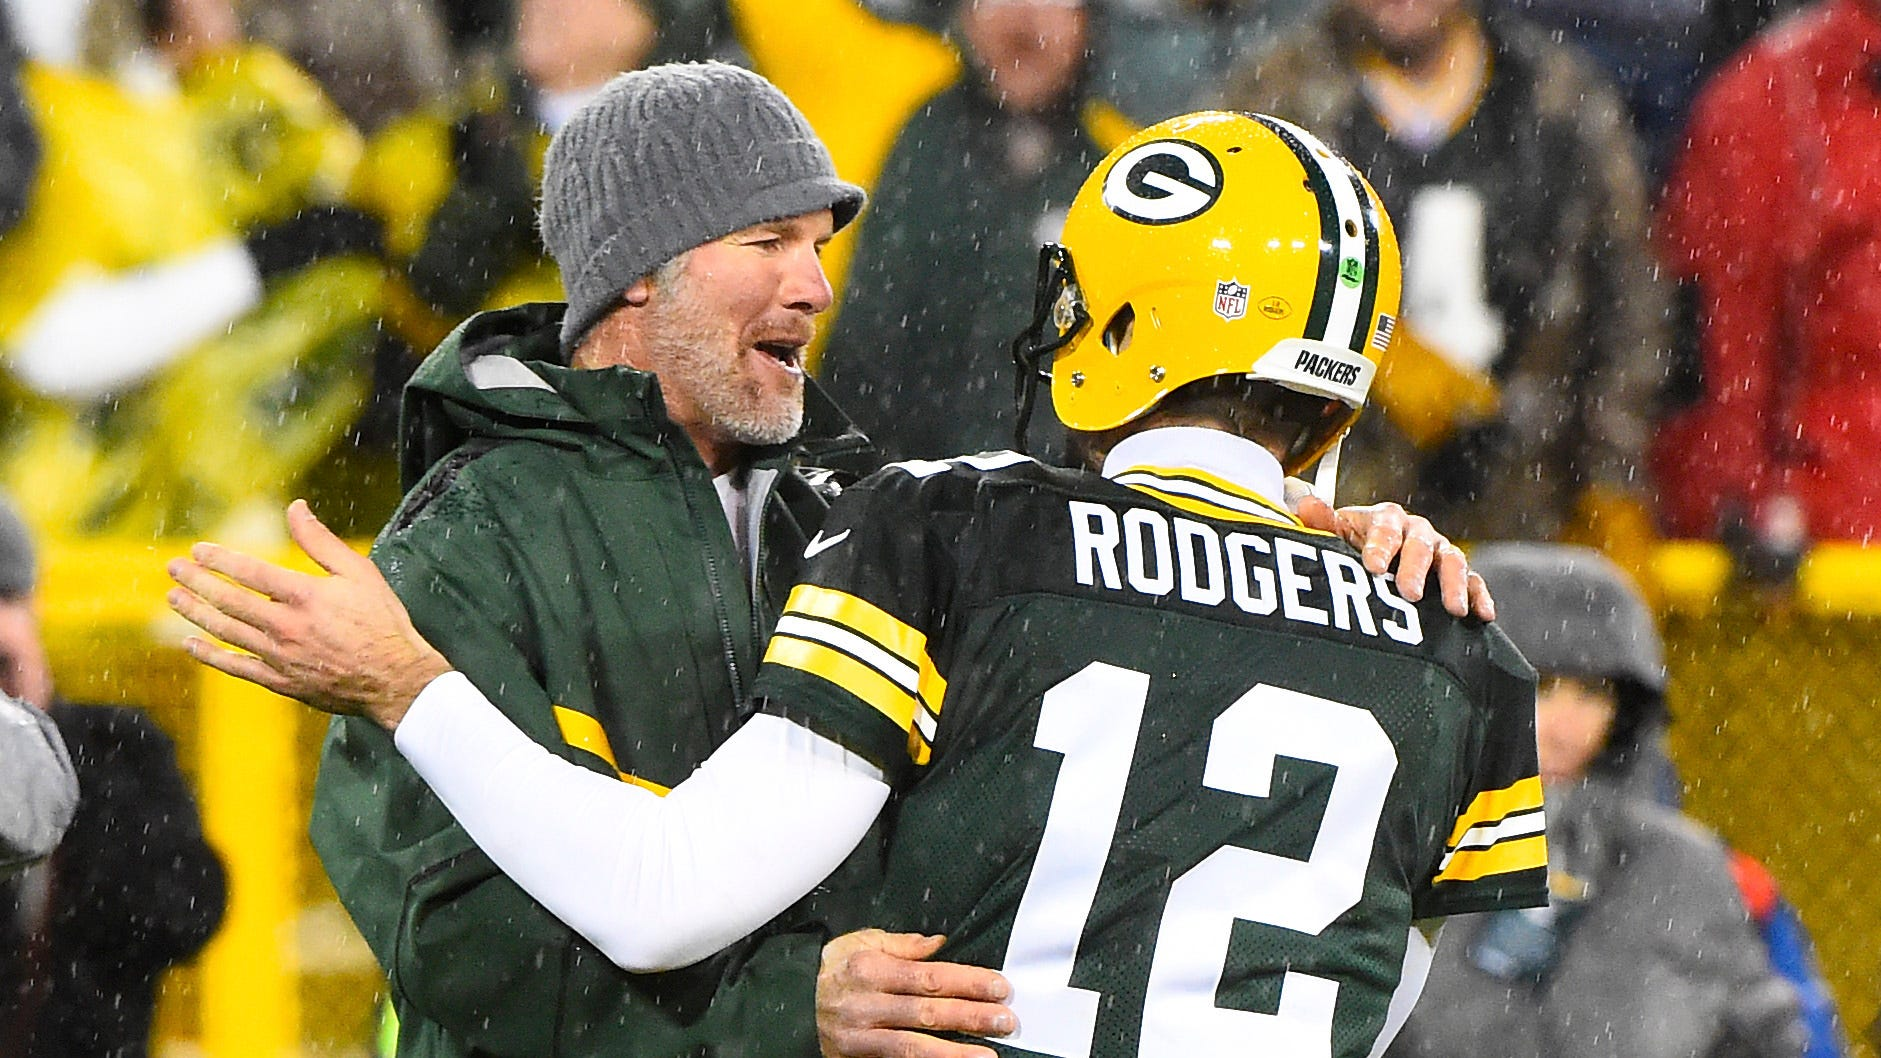 Ccc88c0b-f675-48a6-9a81-0cbcfb1d40d1-usp_nfl__chicago_bears_at_green_bay_packers